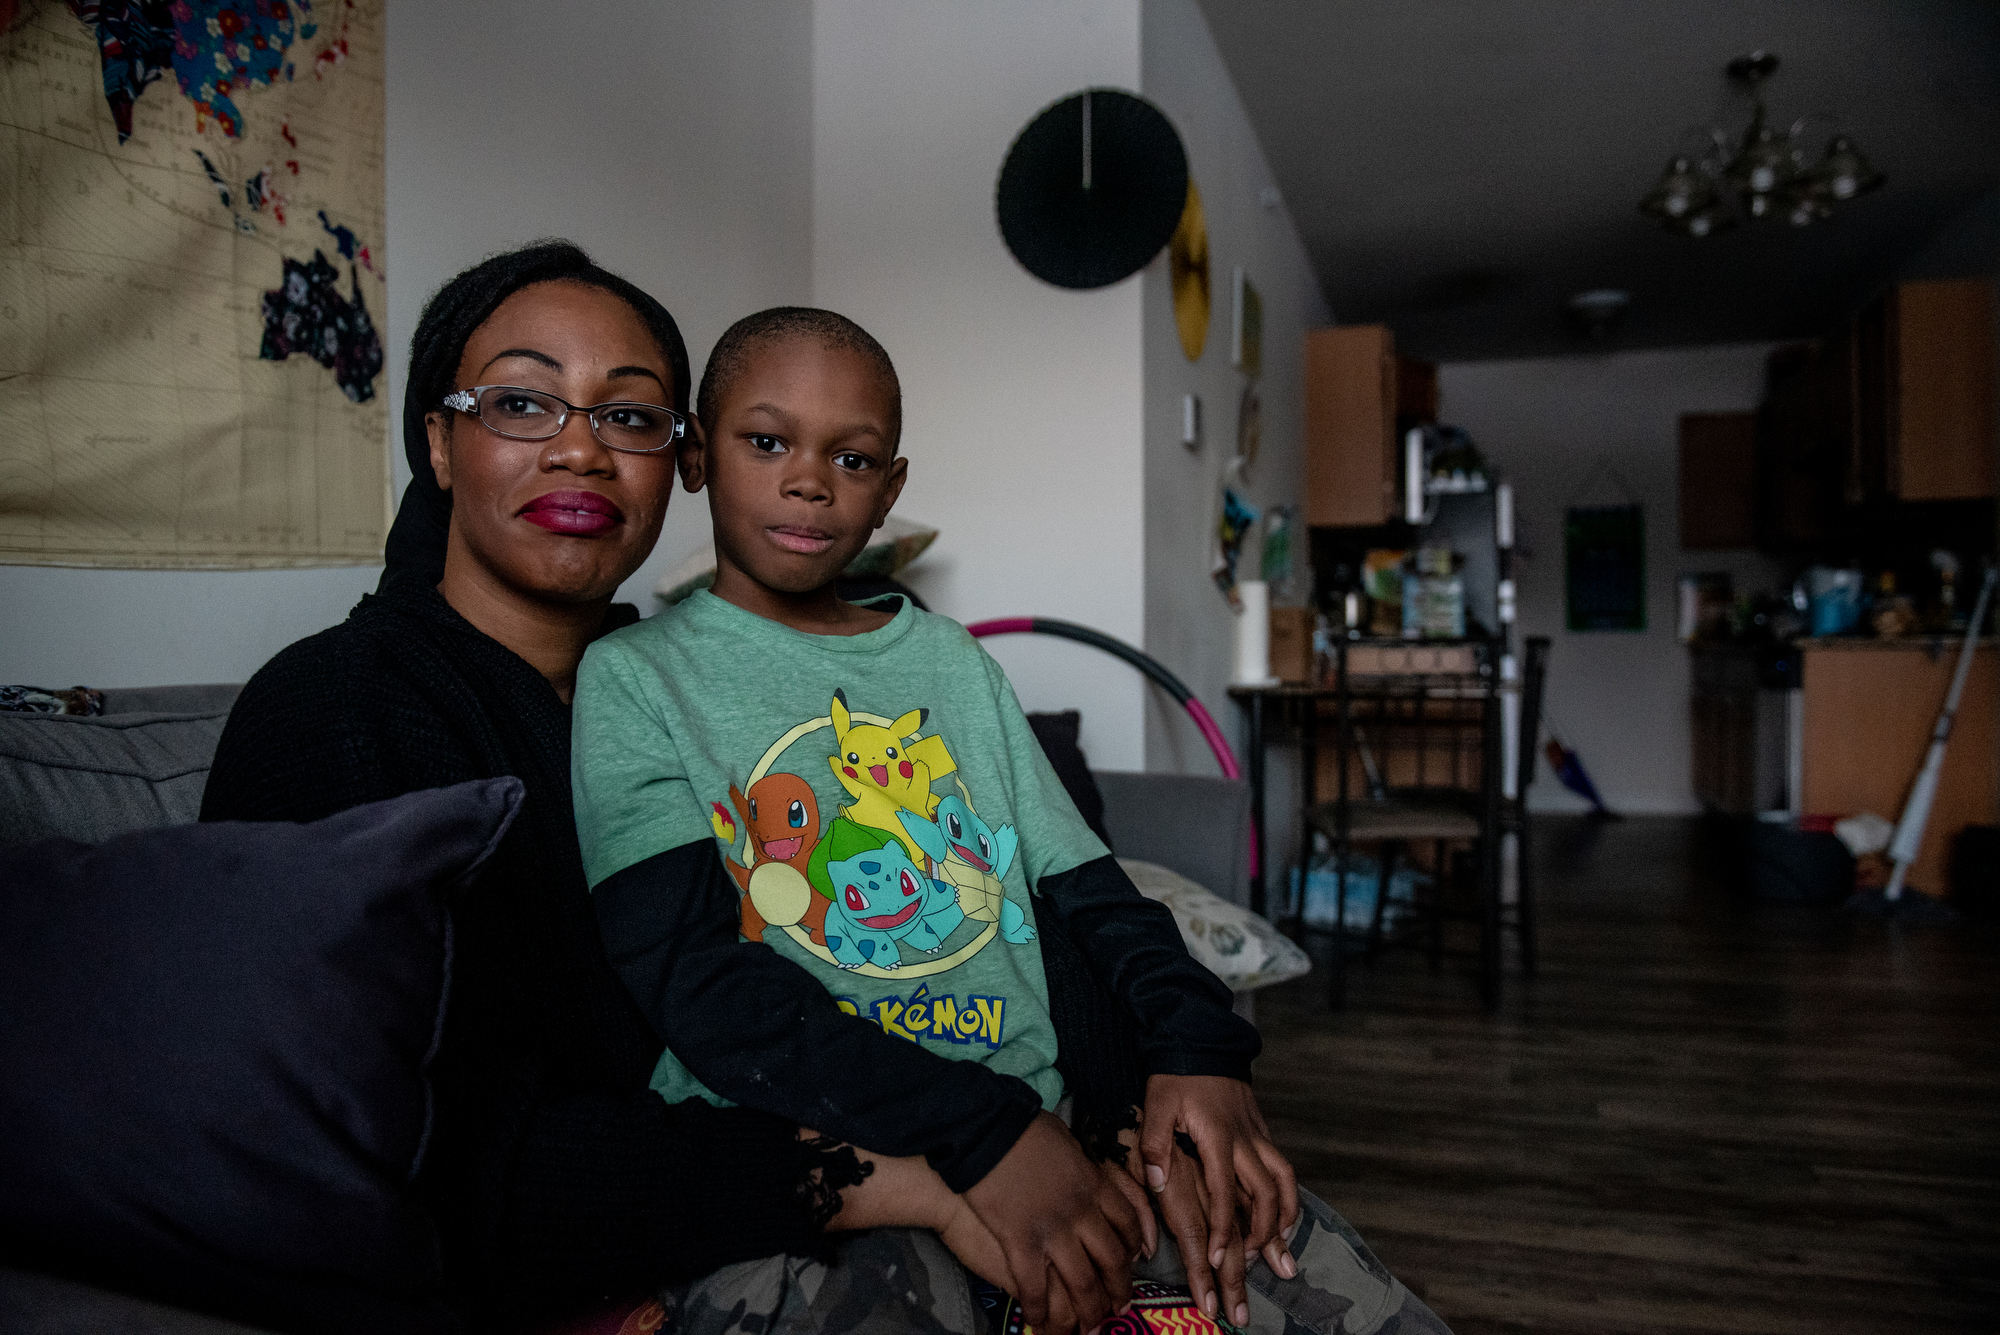 Ann Arbor area's cost of living jeopardizes veteran's efforts to escape poverty